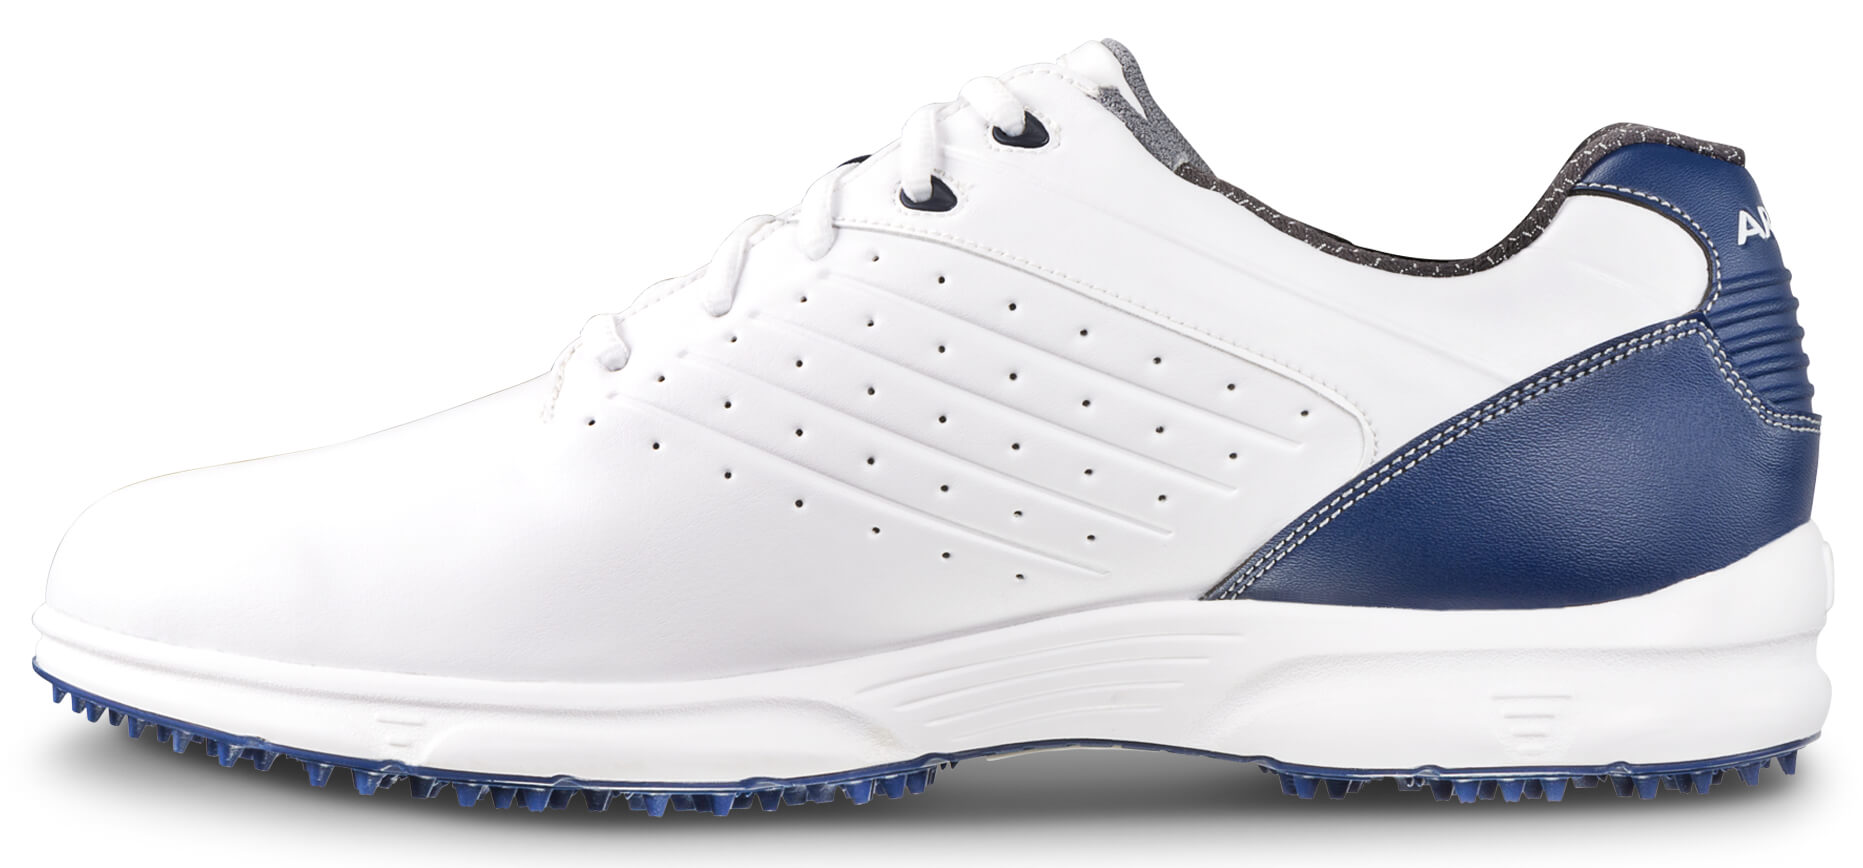 FootJoy-FJ-Arc-SL-Golf-Shoes-Men-039-s-Spikeless-Waterproof-New-Choose-color thumbnail 9